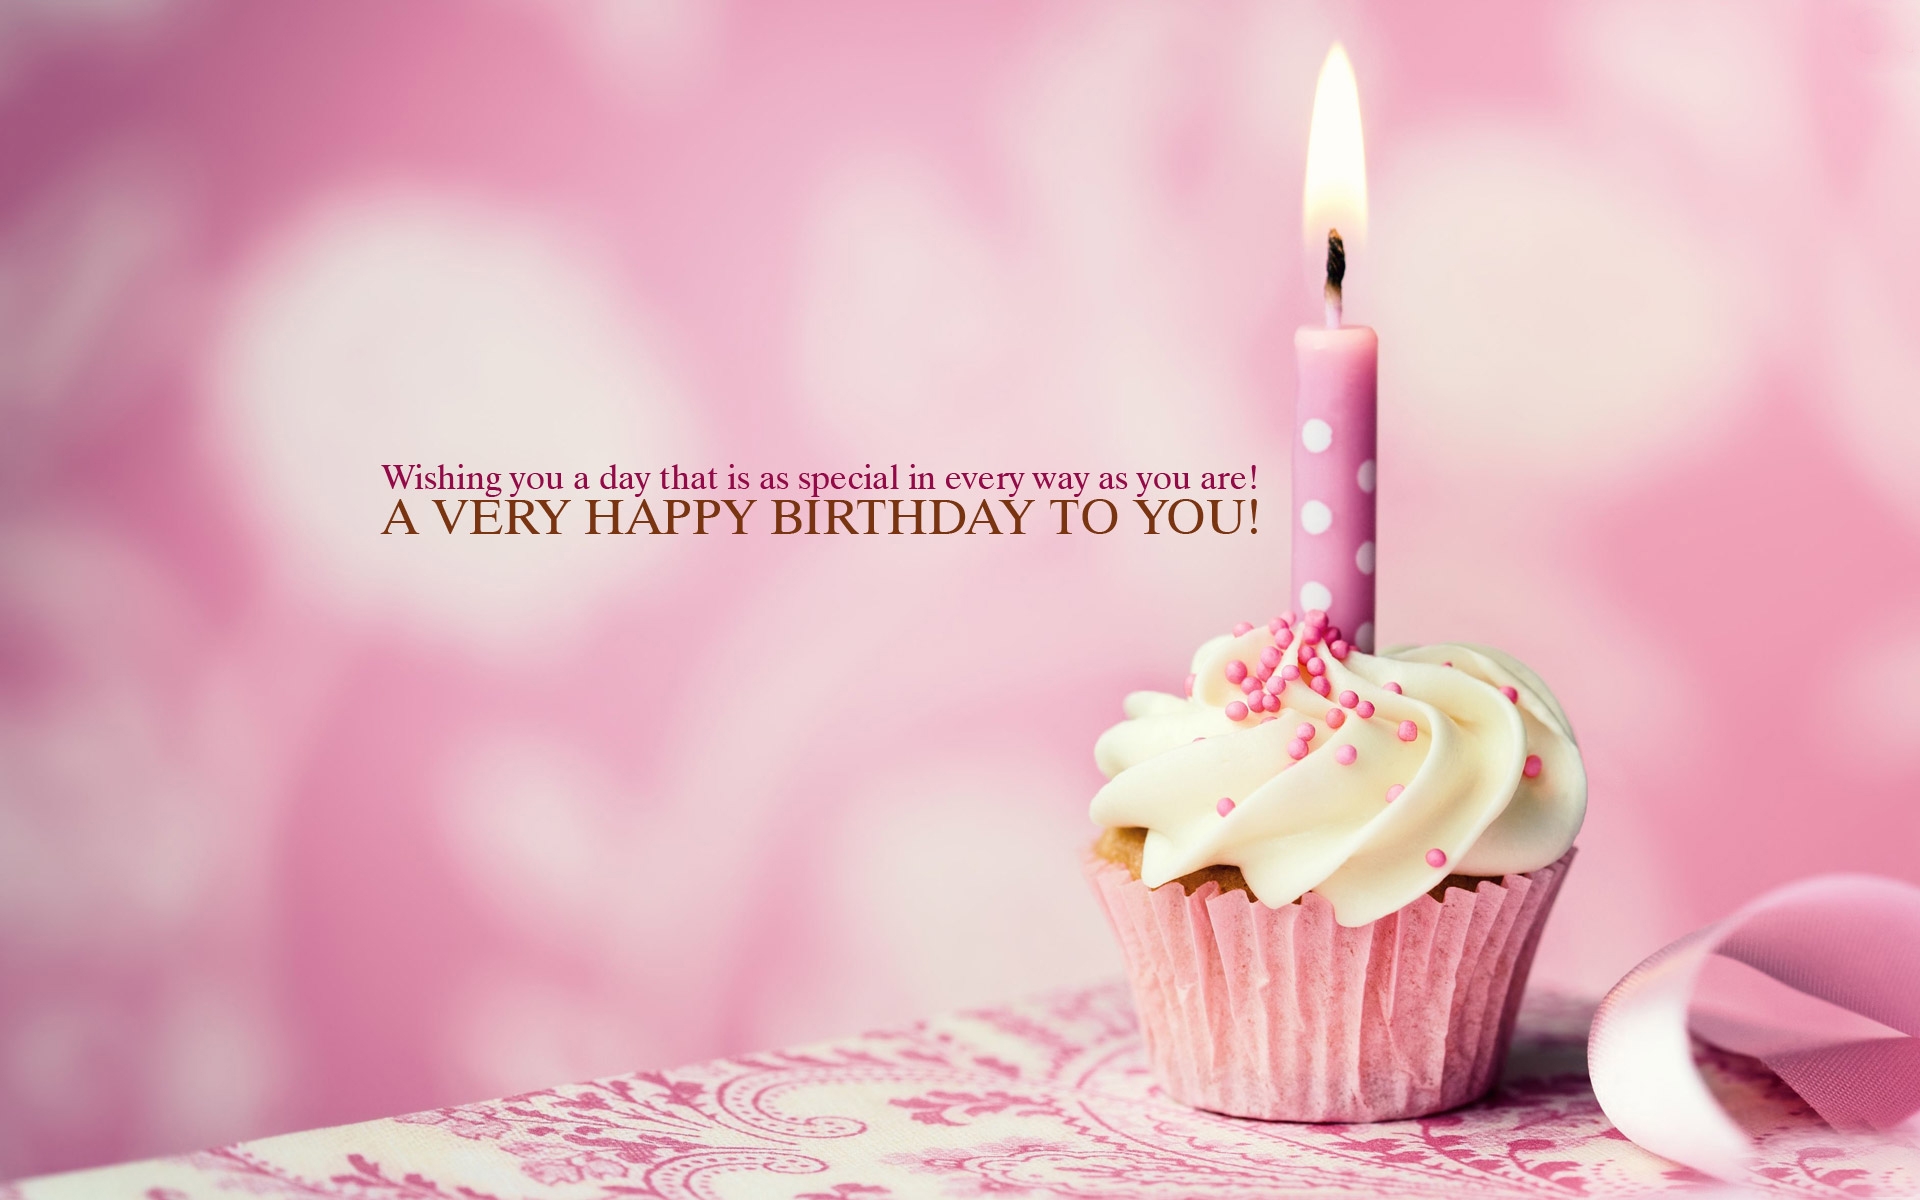 Happy_birthday_messages-cake_images